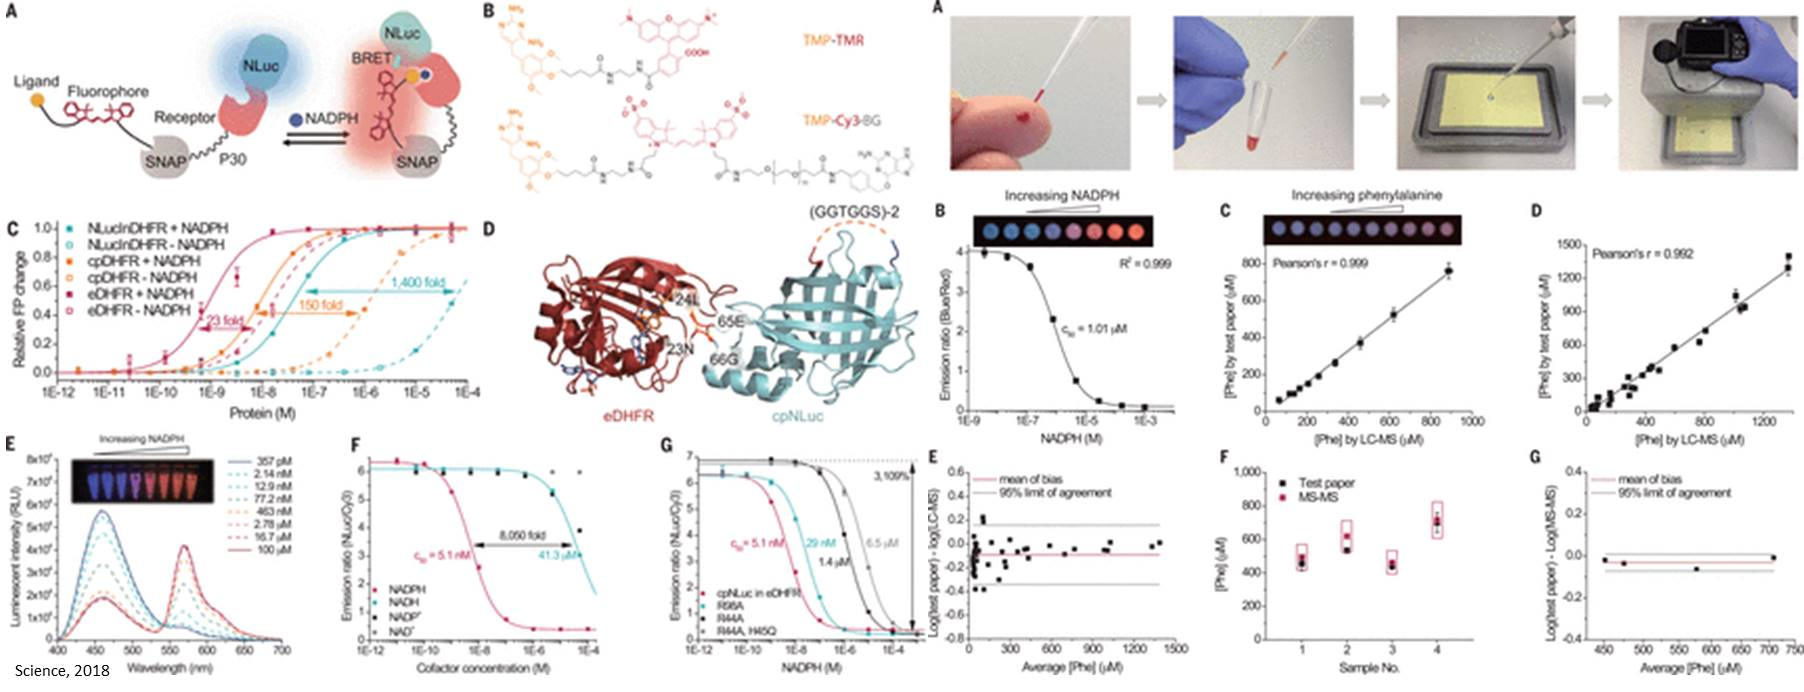 Quick, paper-based method for detecting medically relevant metabolites